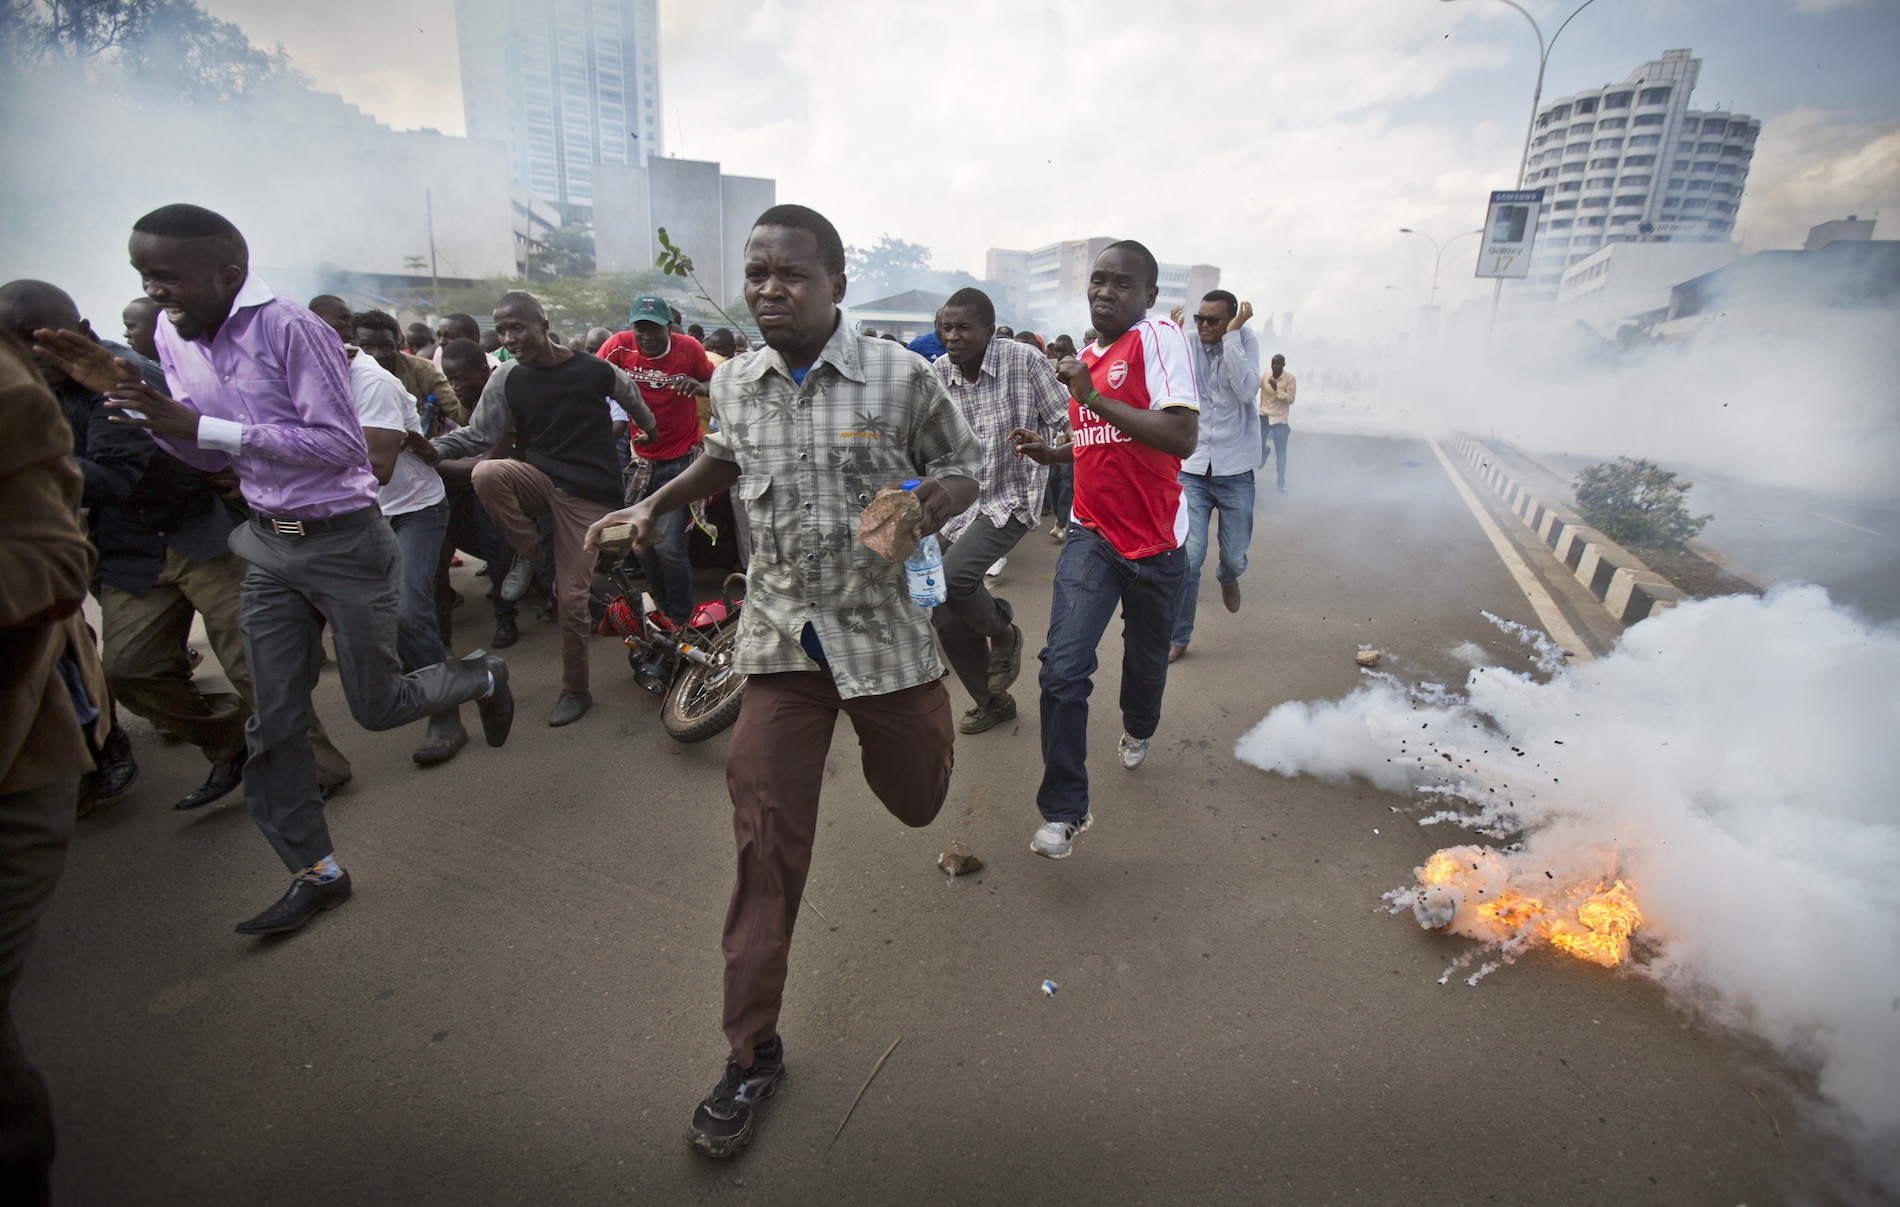 Opposition supporters, some carrying rocks, flee from exploding tear gas grenades fired by riot police.